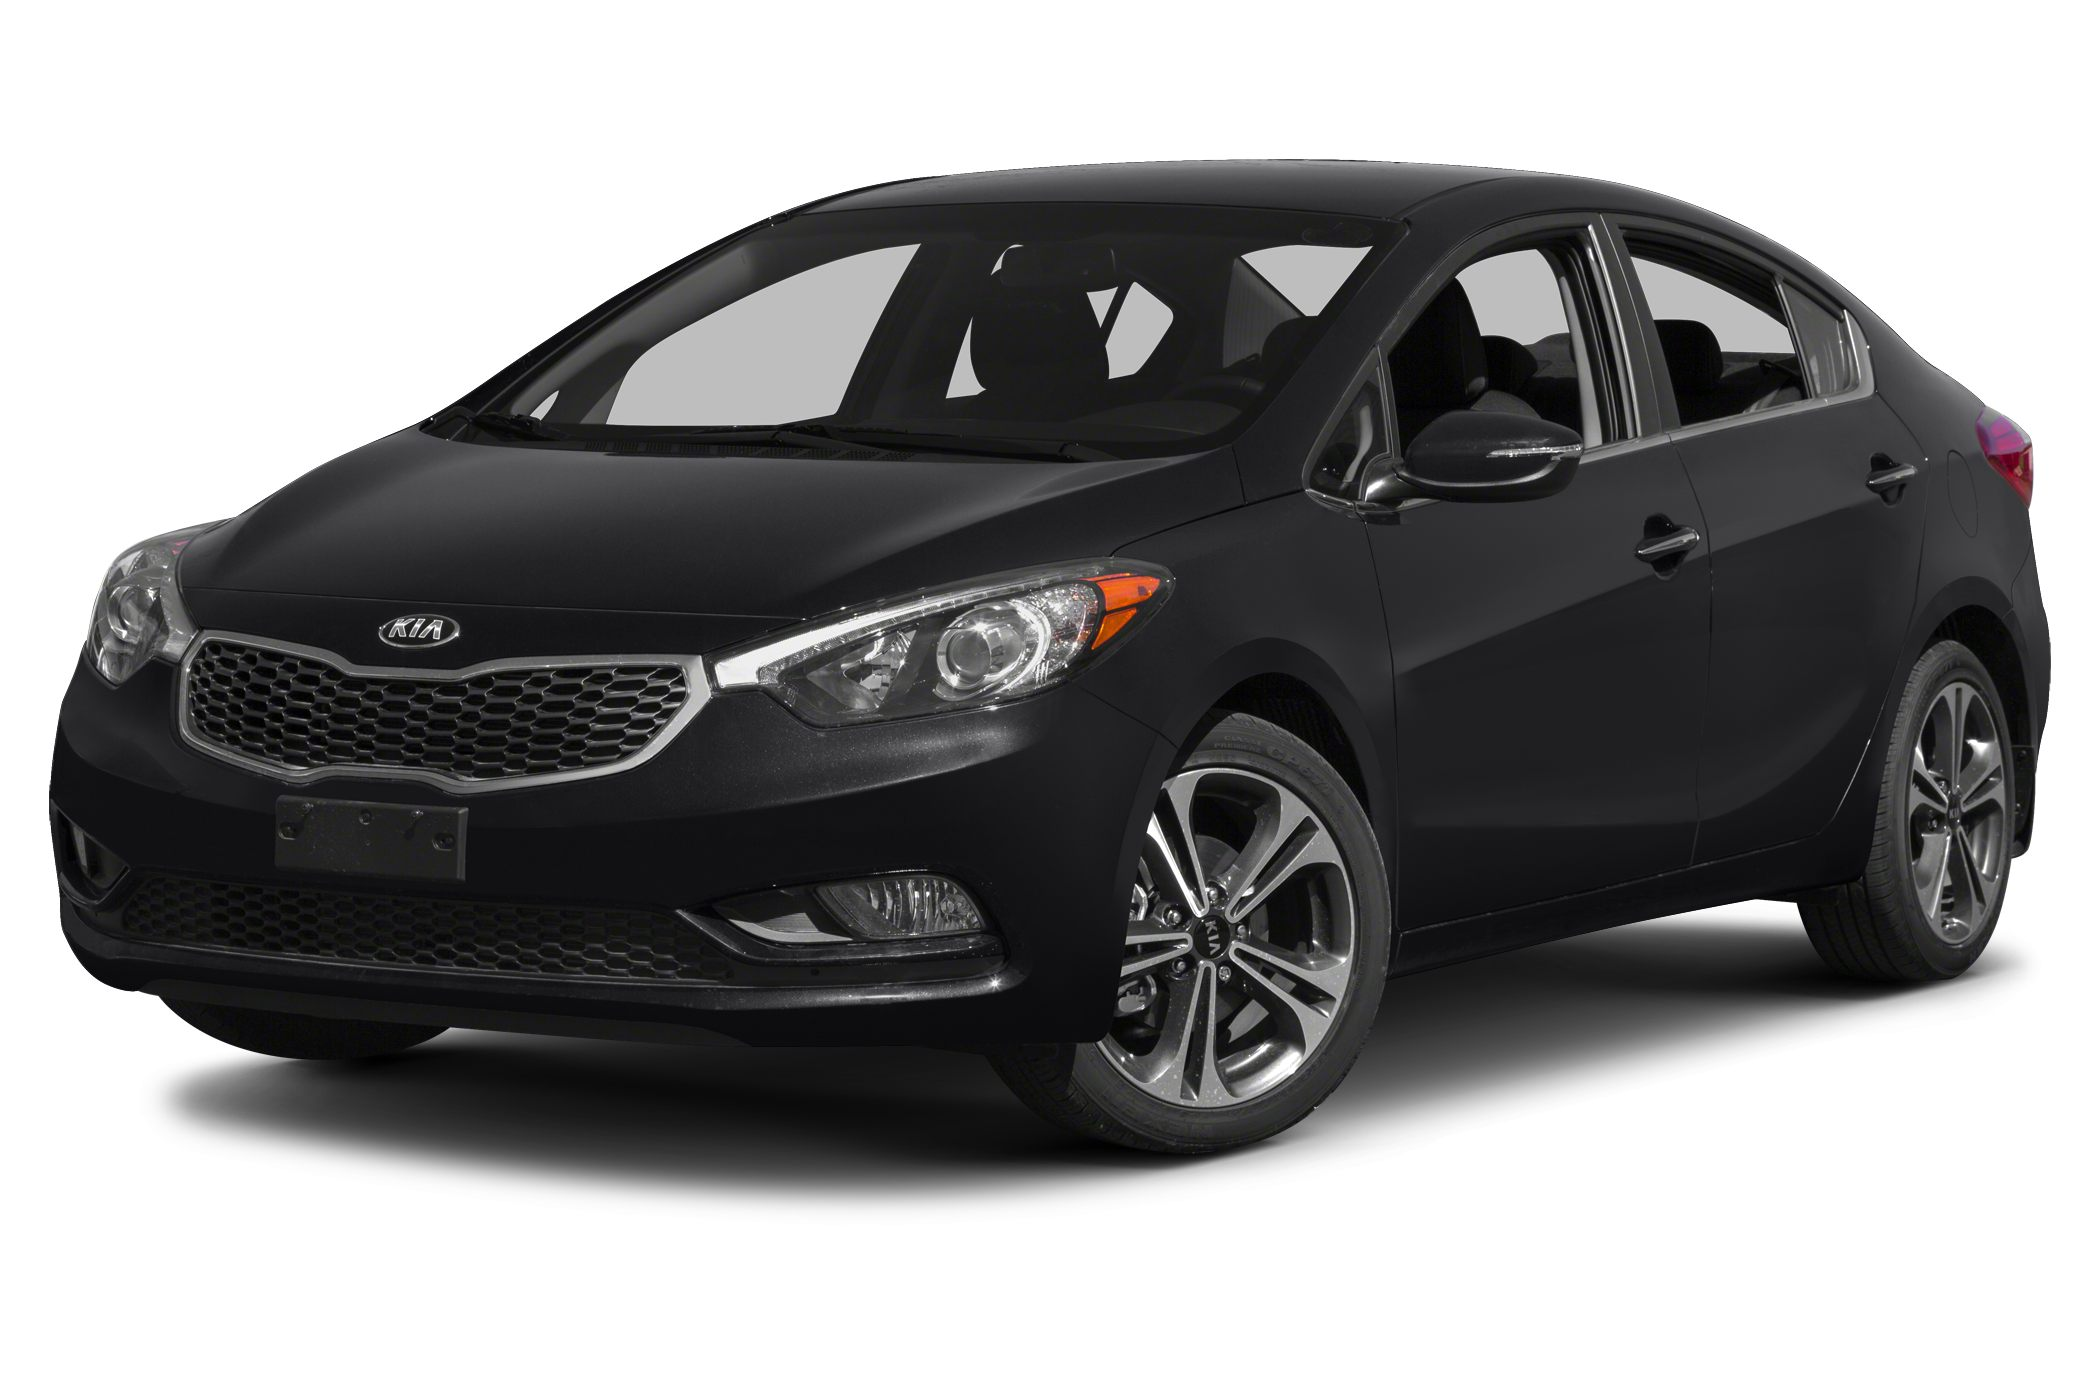 2015 Kia Forte LX Sedan for sale in Birmingham for $18,000 with 15,928 miles